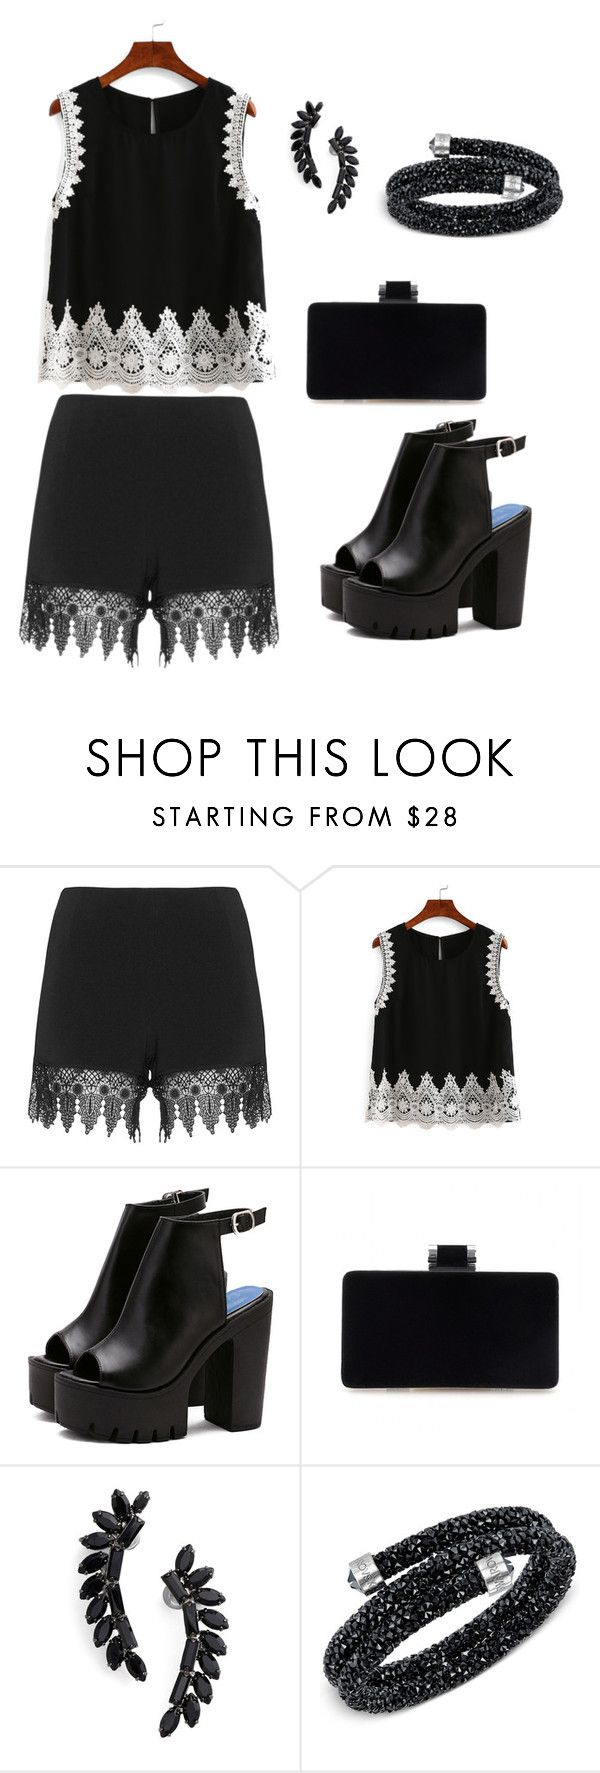 """Tekne partisi"" by ronabar ❤ liked on Polyvore featuring JunaRose, Cristabelle and Swarovski"